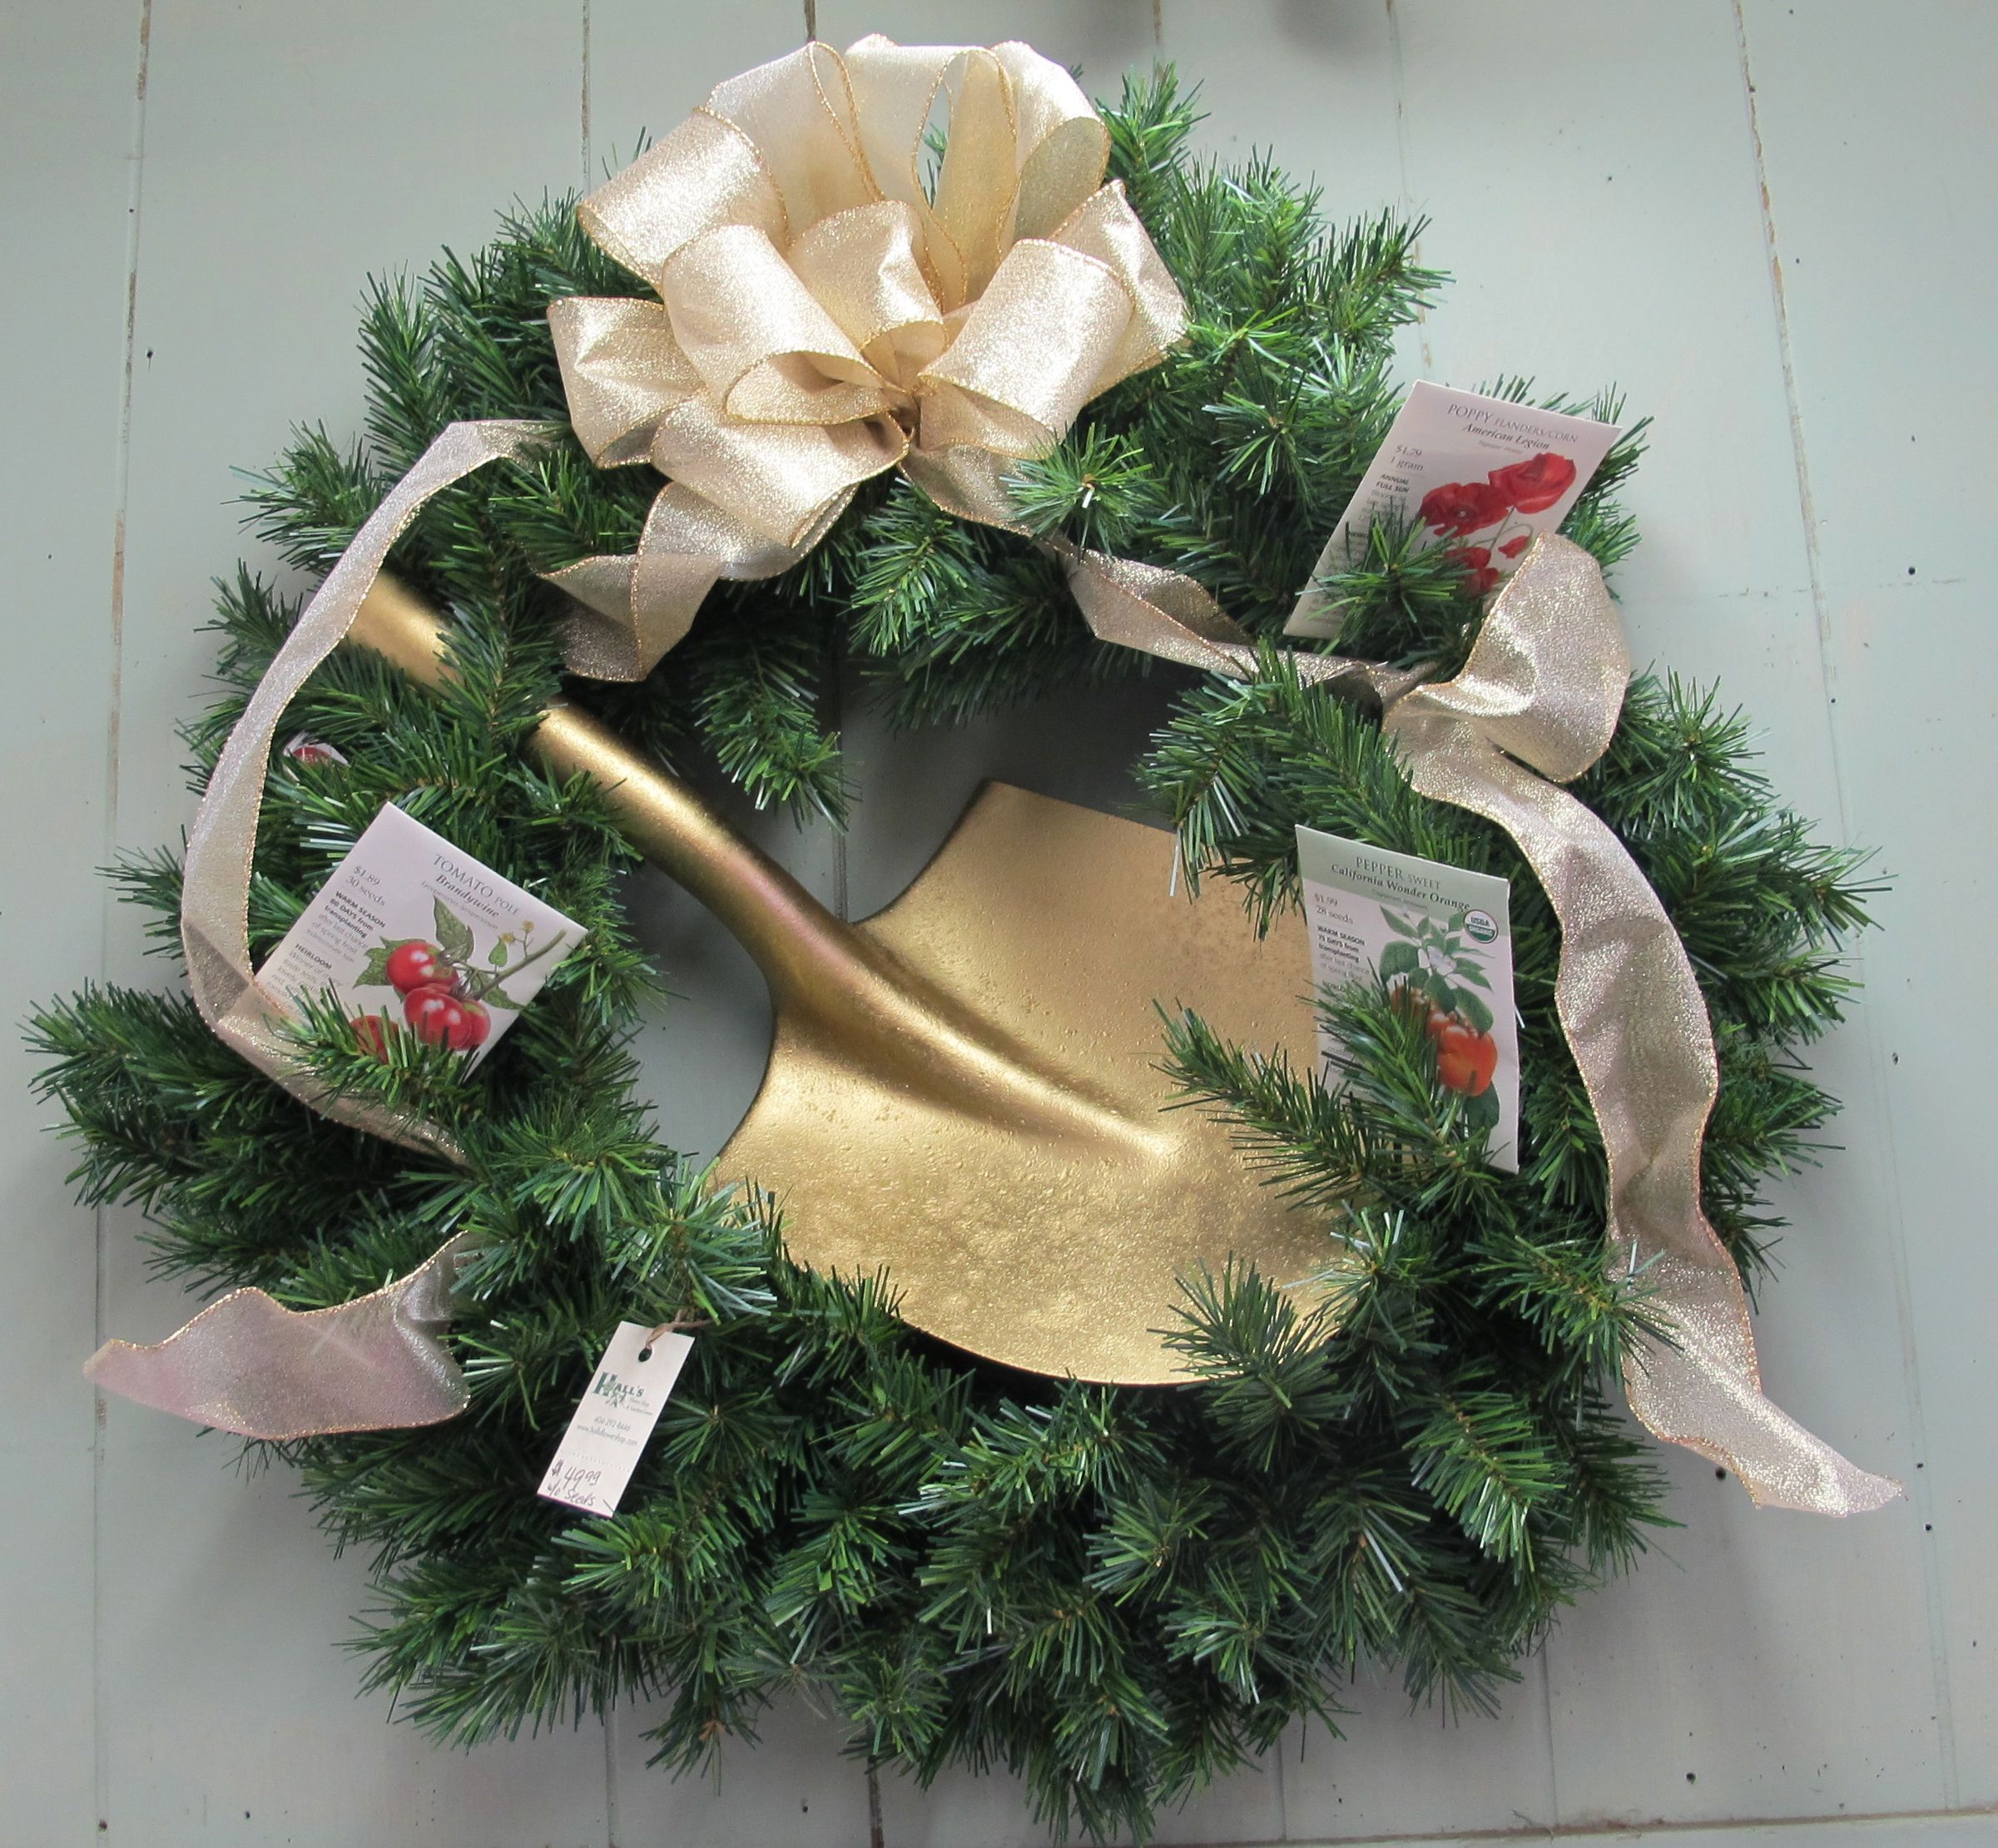 Christmas garden wreath with gold shovel what fun to turn